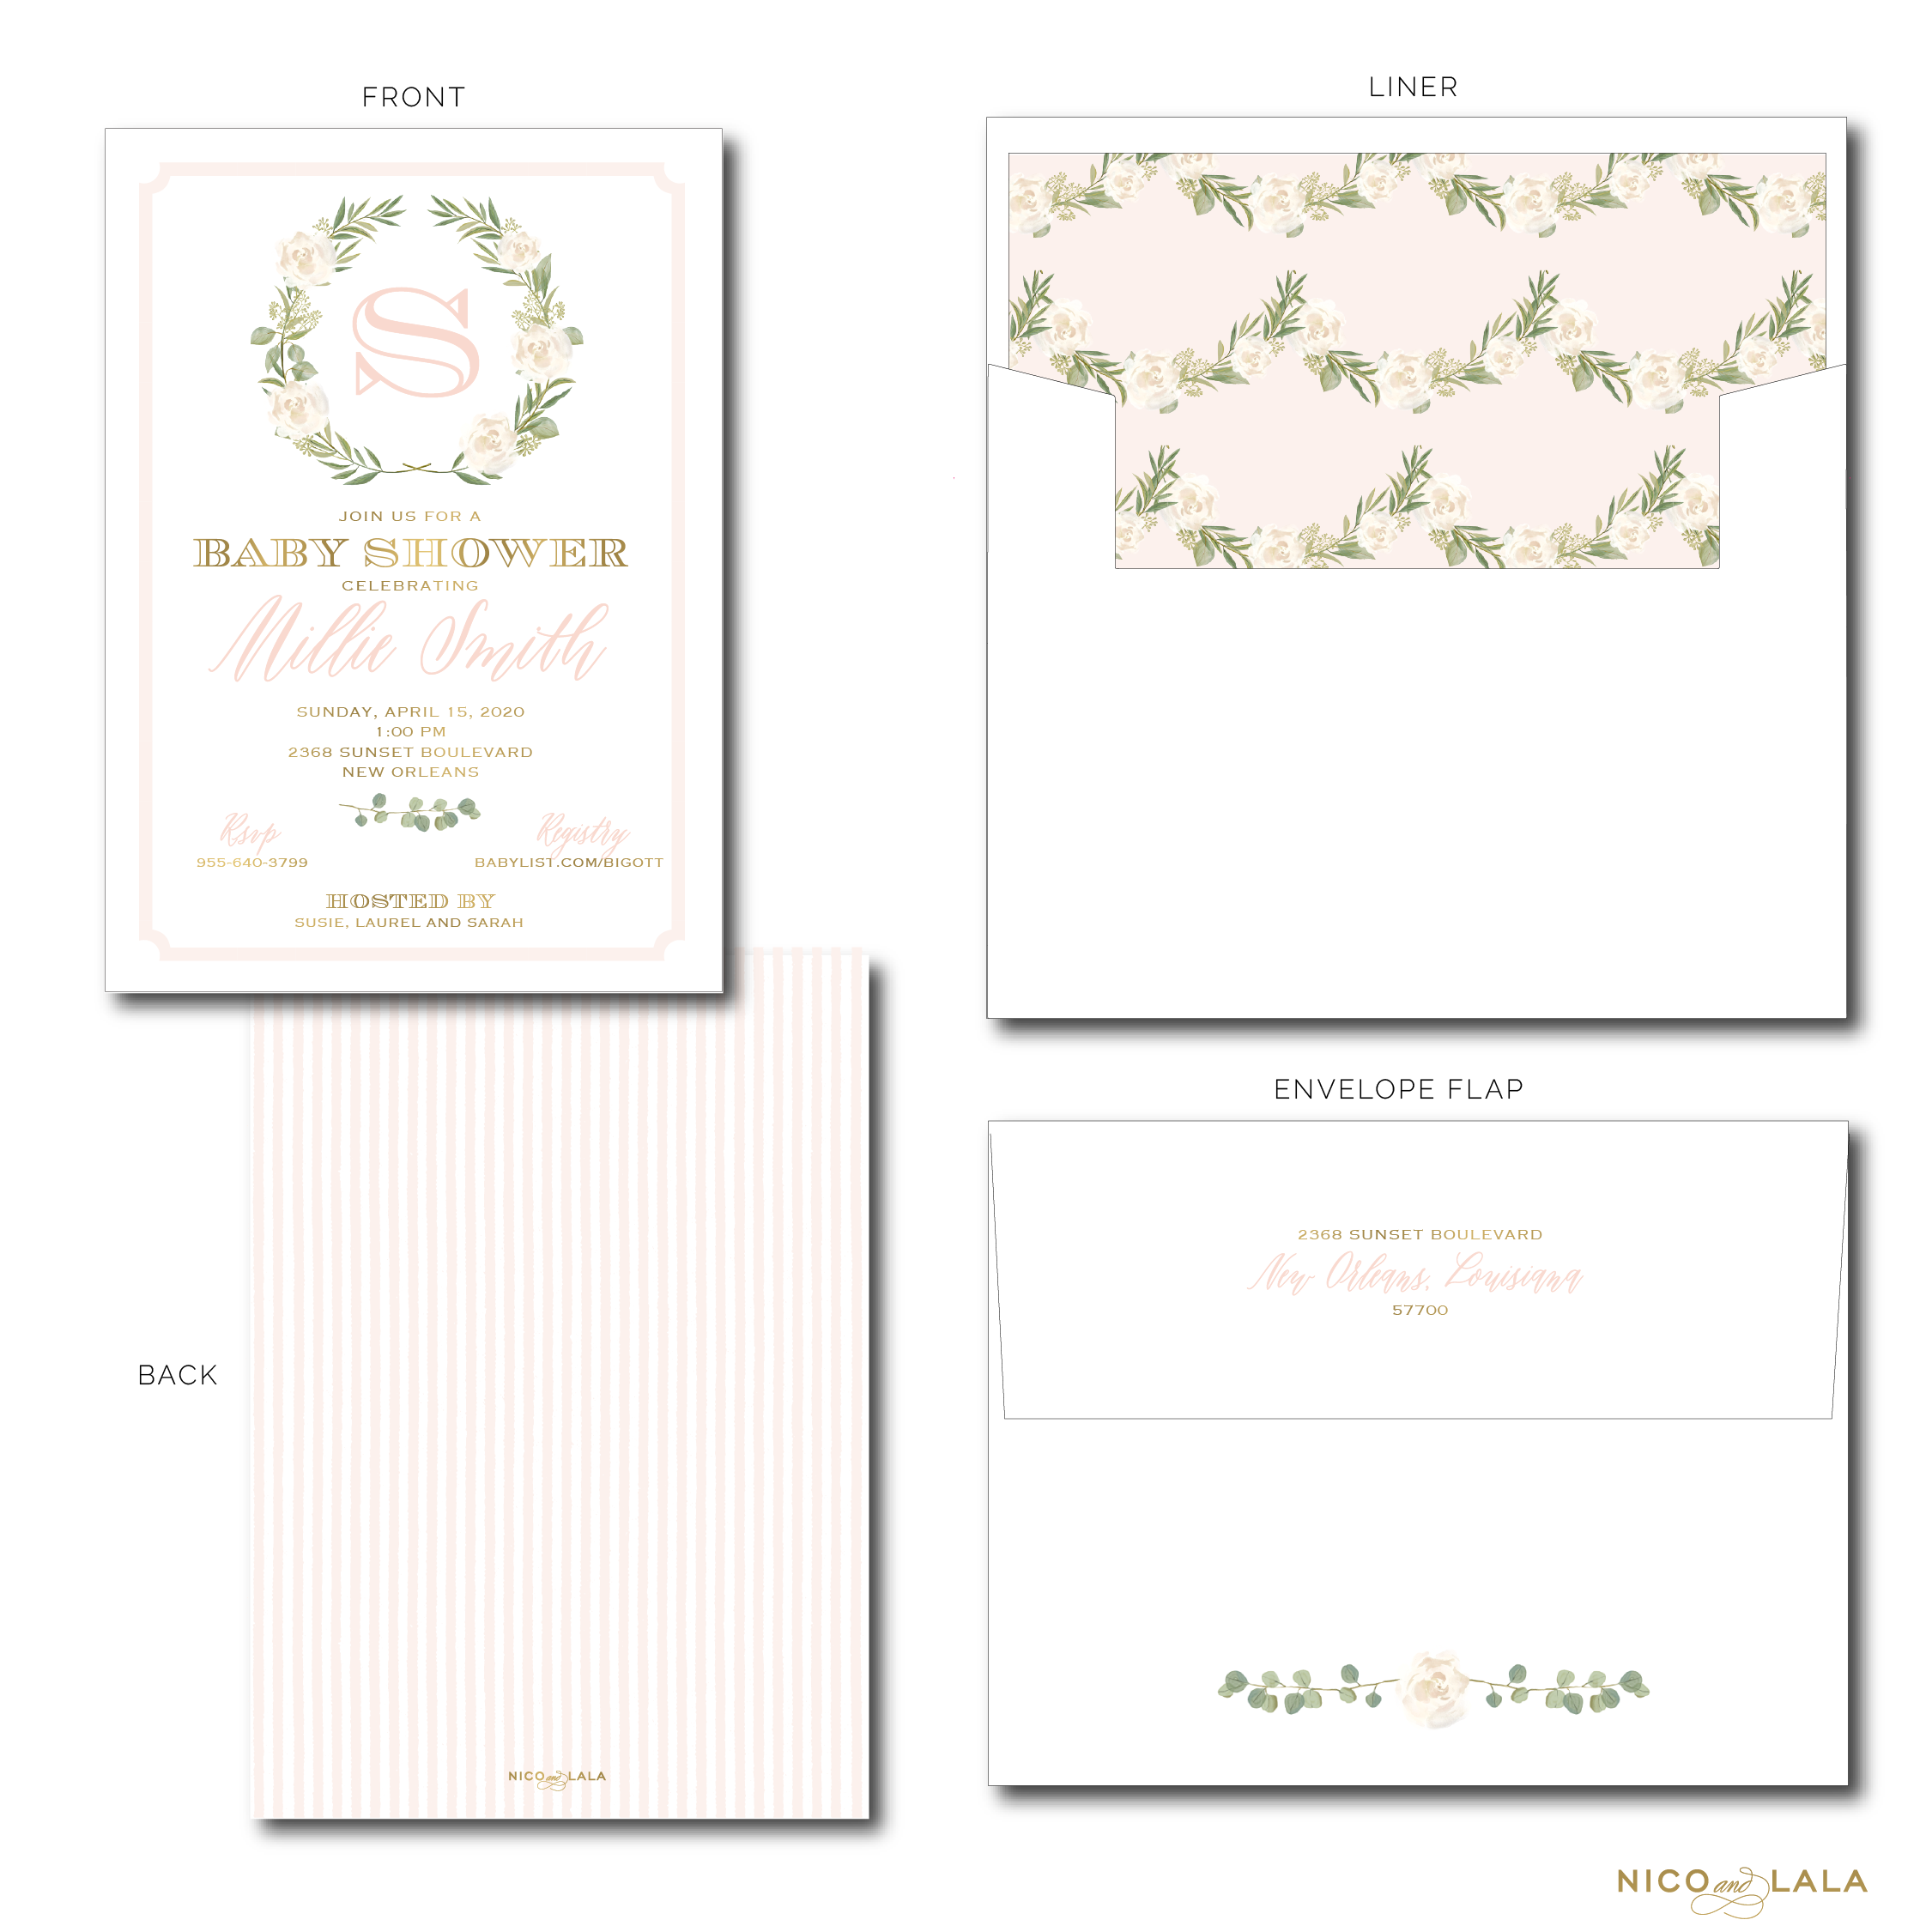 GARLAND AND SEERSUCKER INVITATIONS